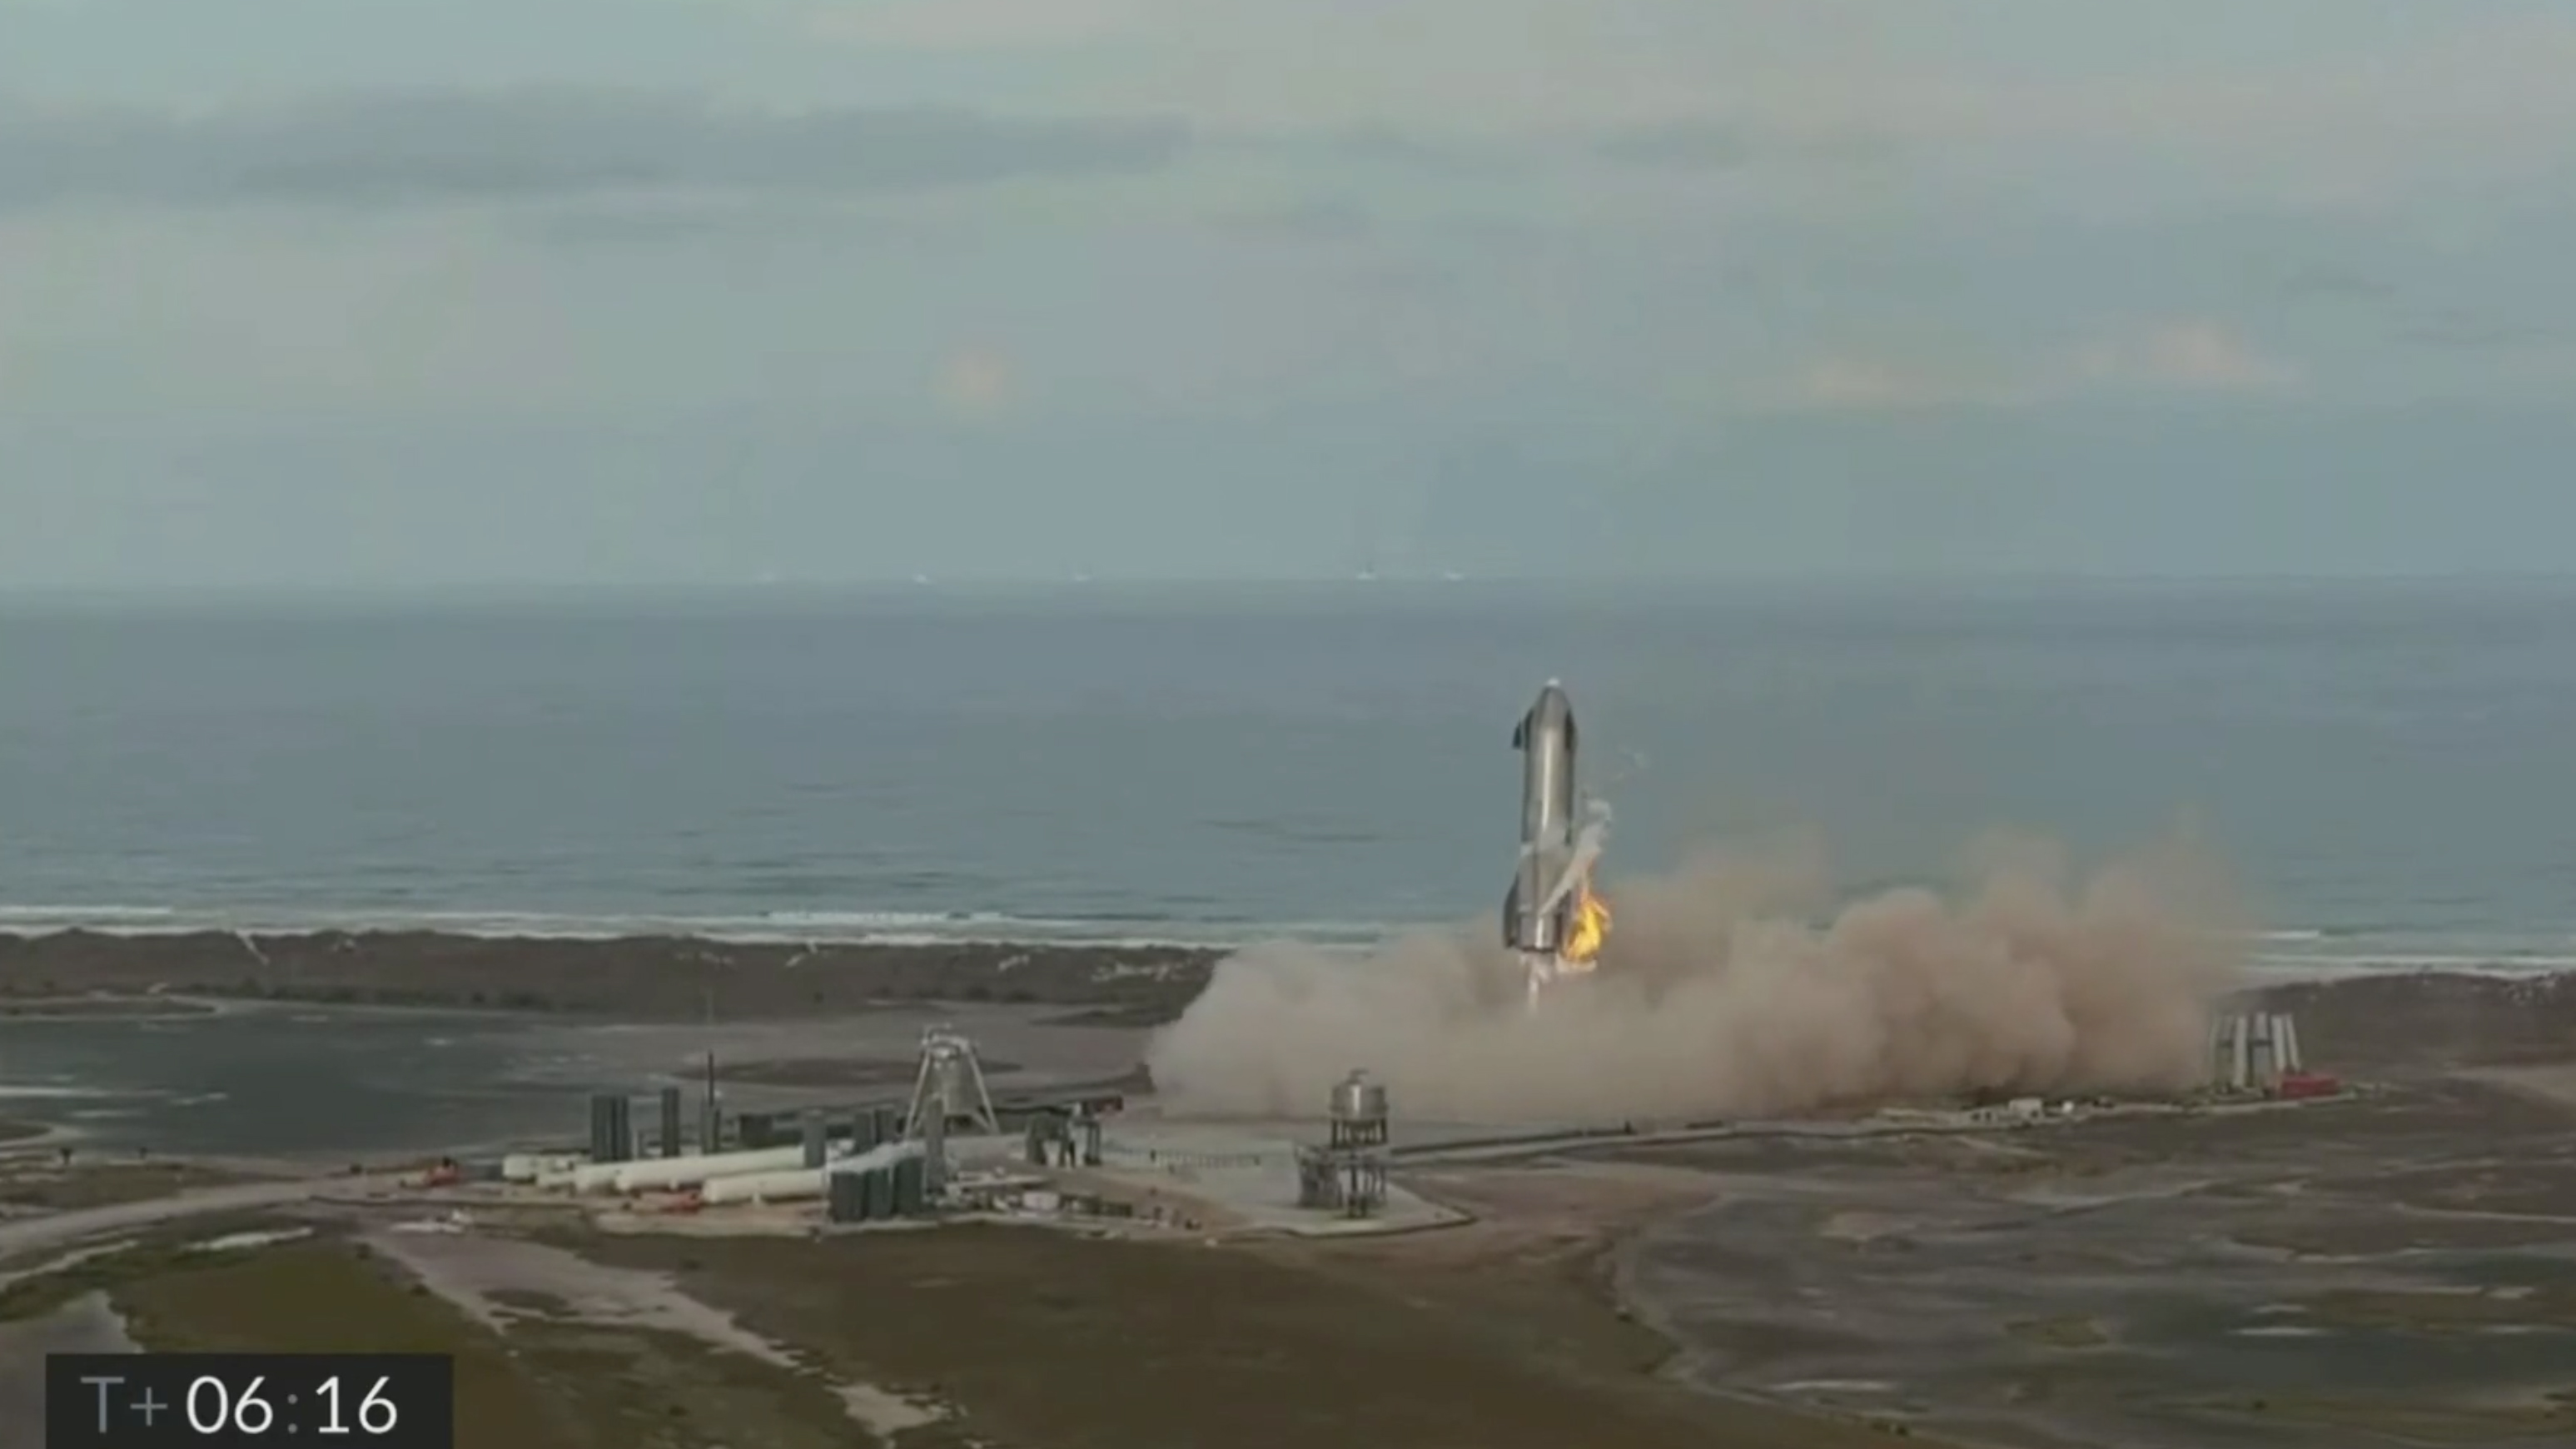 SpaceX's Starship SN10 rocket prototype completed a test launch on Wednesday (March 3), and even though it had a successful liftoff and soft landing, it exploded upon landing at the company's Boca Chica, Texas site.